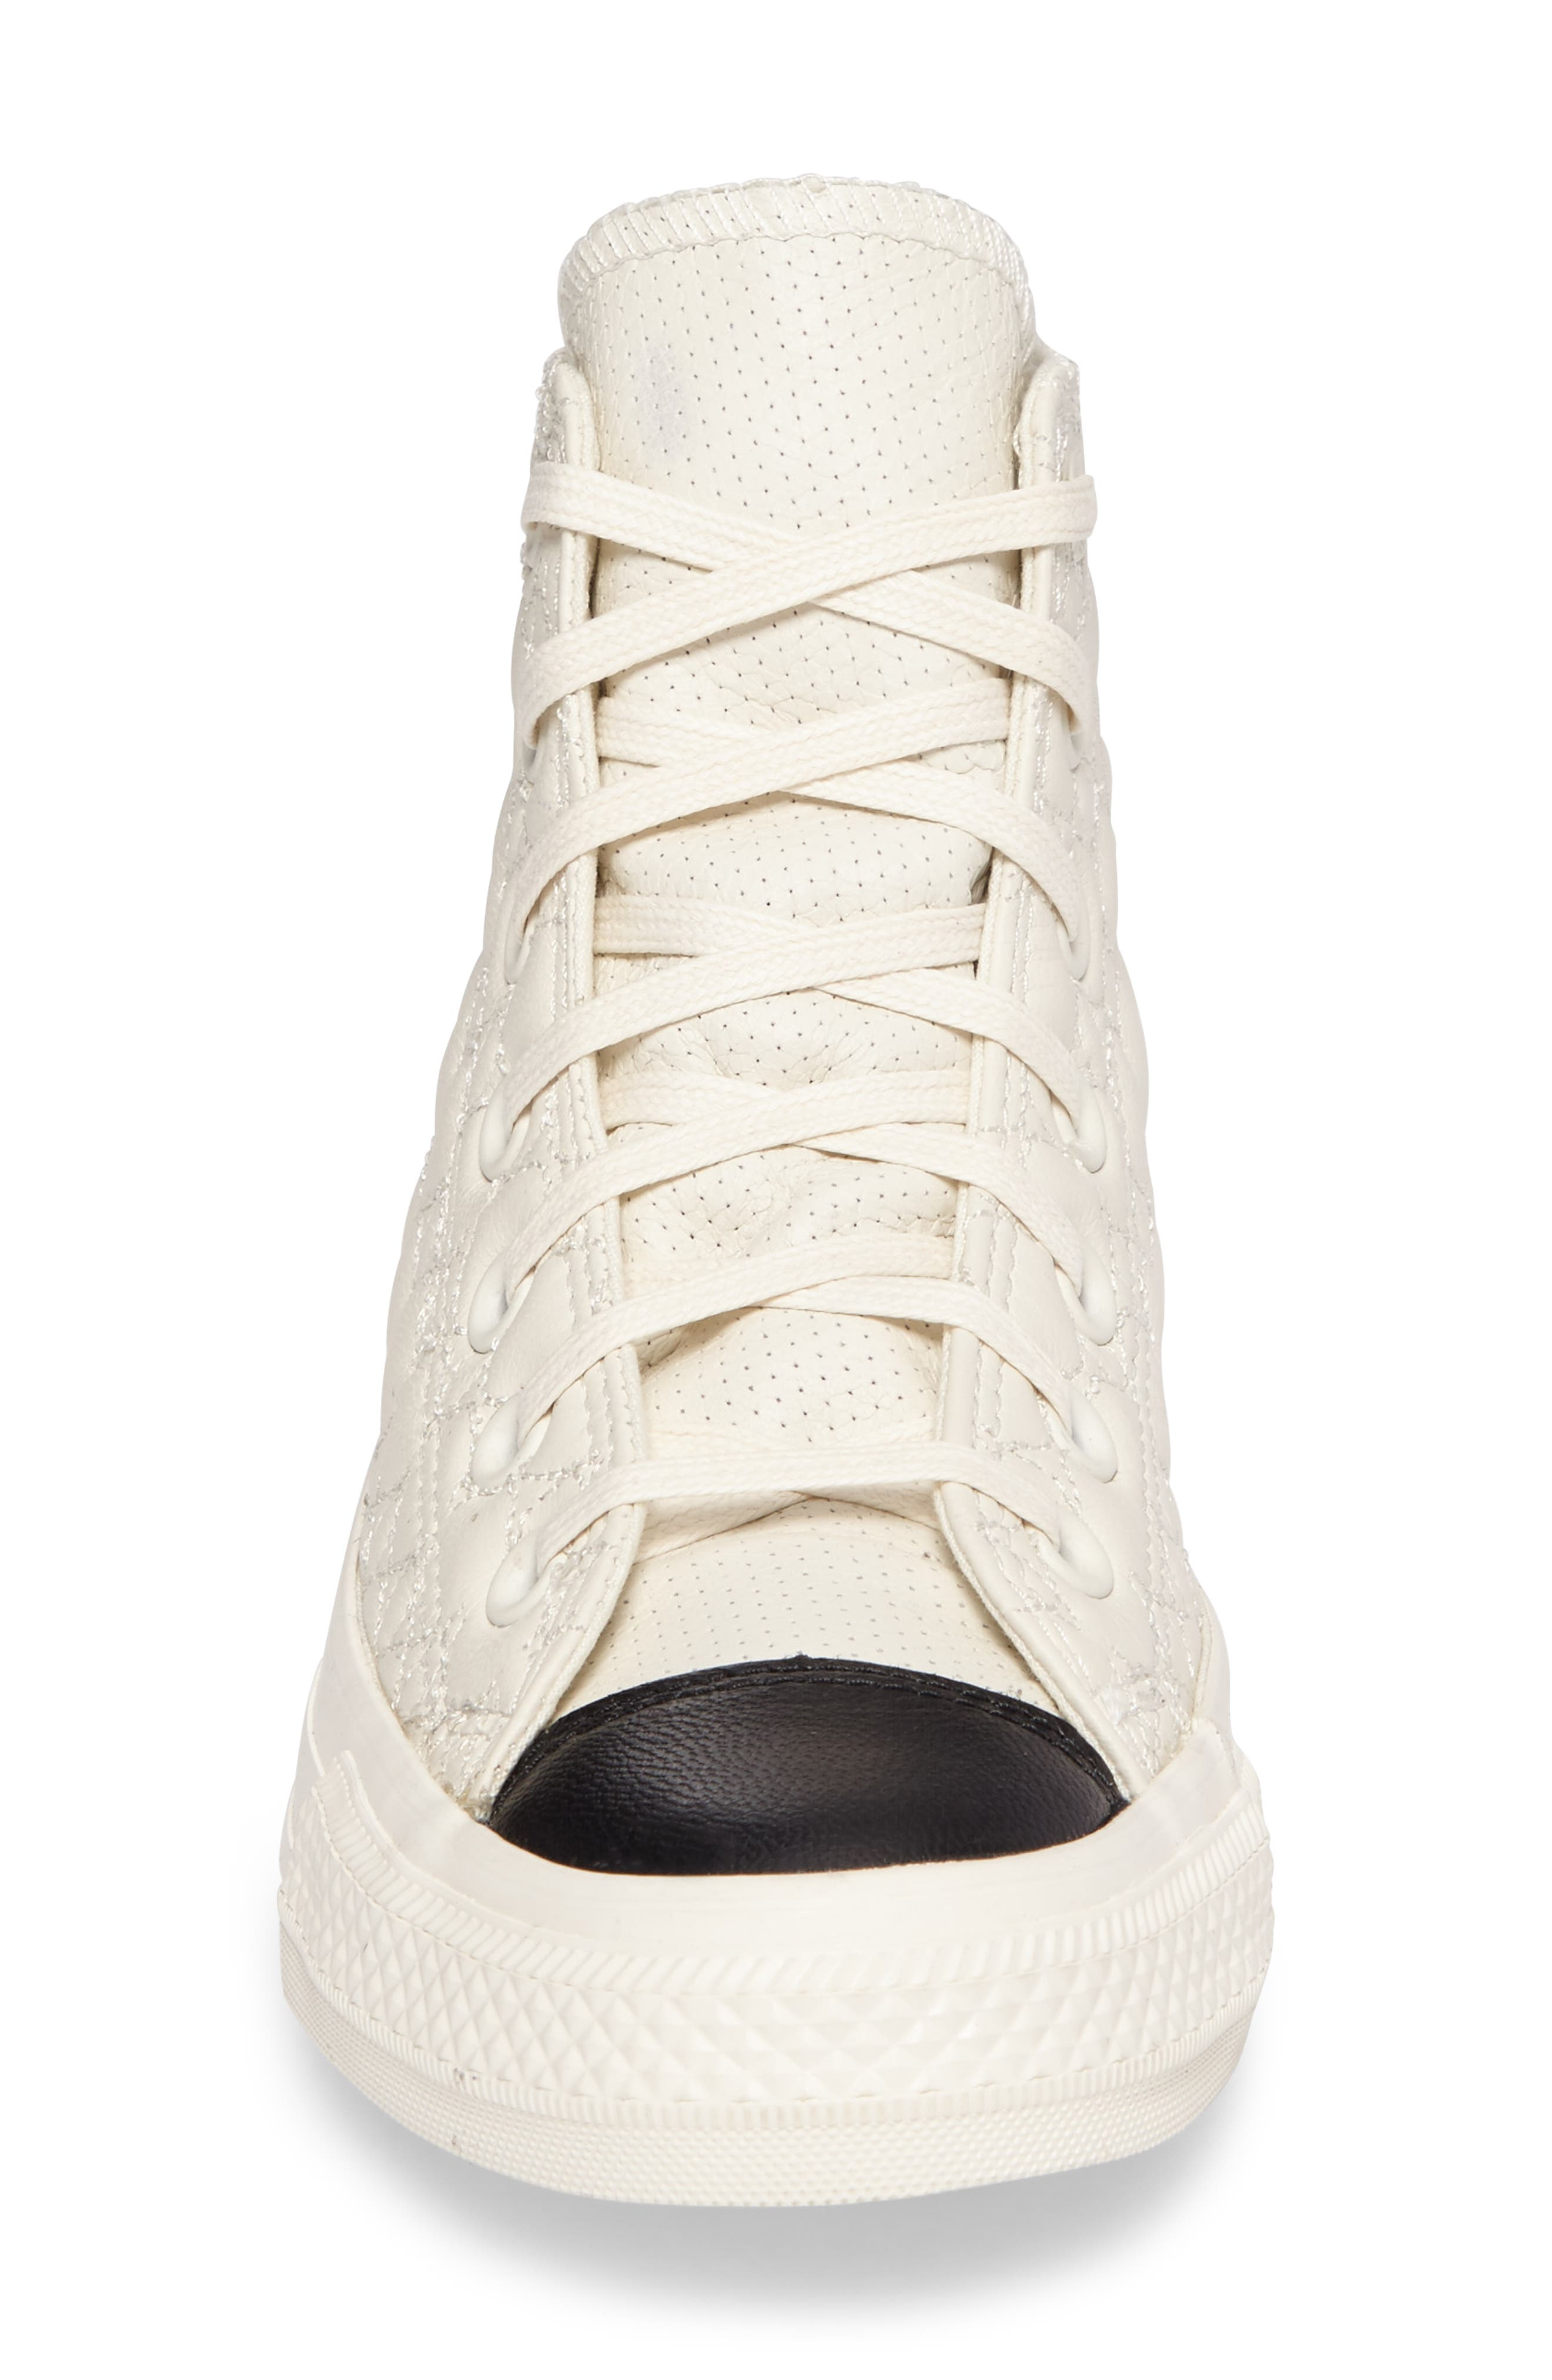 All Star<sup>®</sup> Quilted High Top Sneaker,                             Alternate thumbnail 4, color,